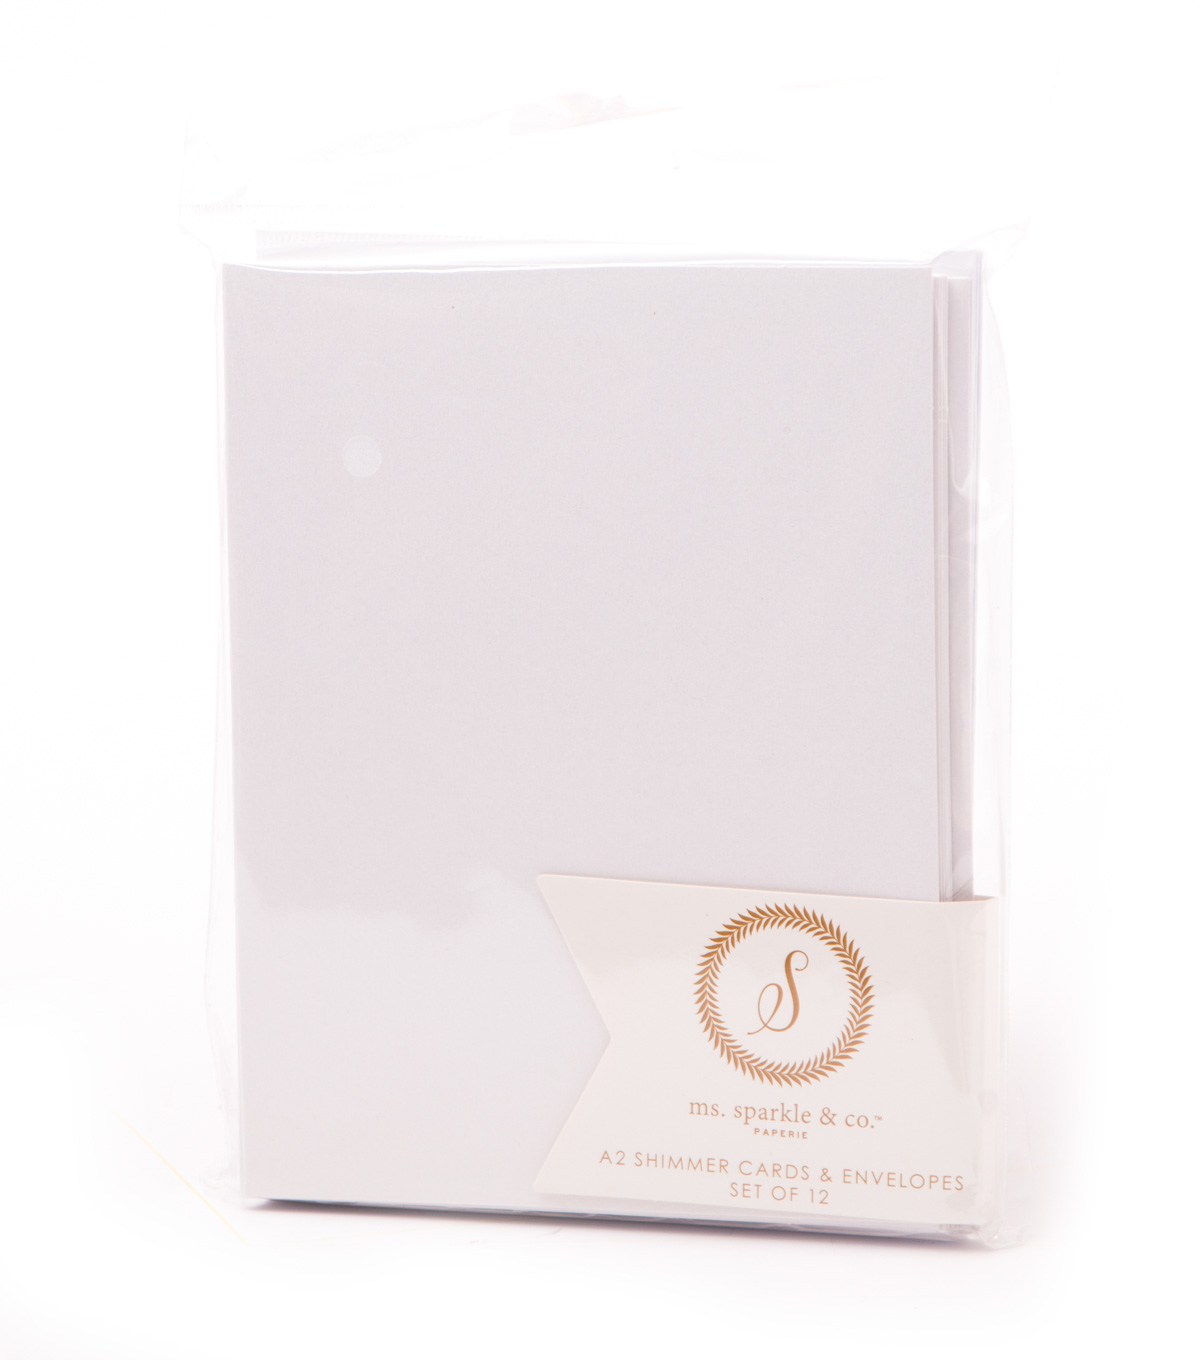 Ms. Sparkle & Co. A2 Shimmer Cards & Envelopes-White